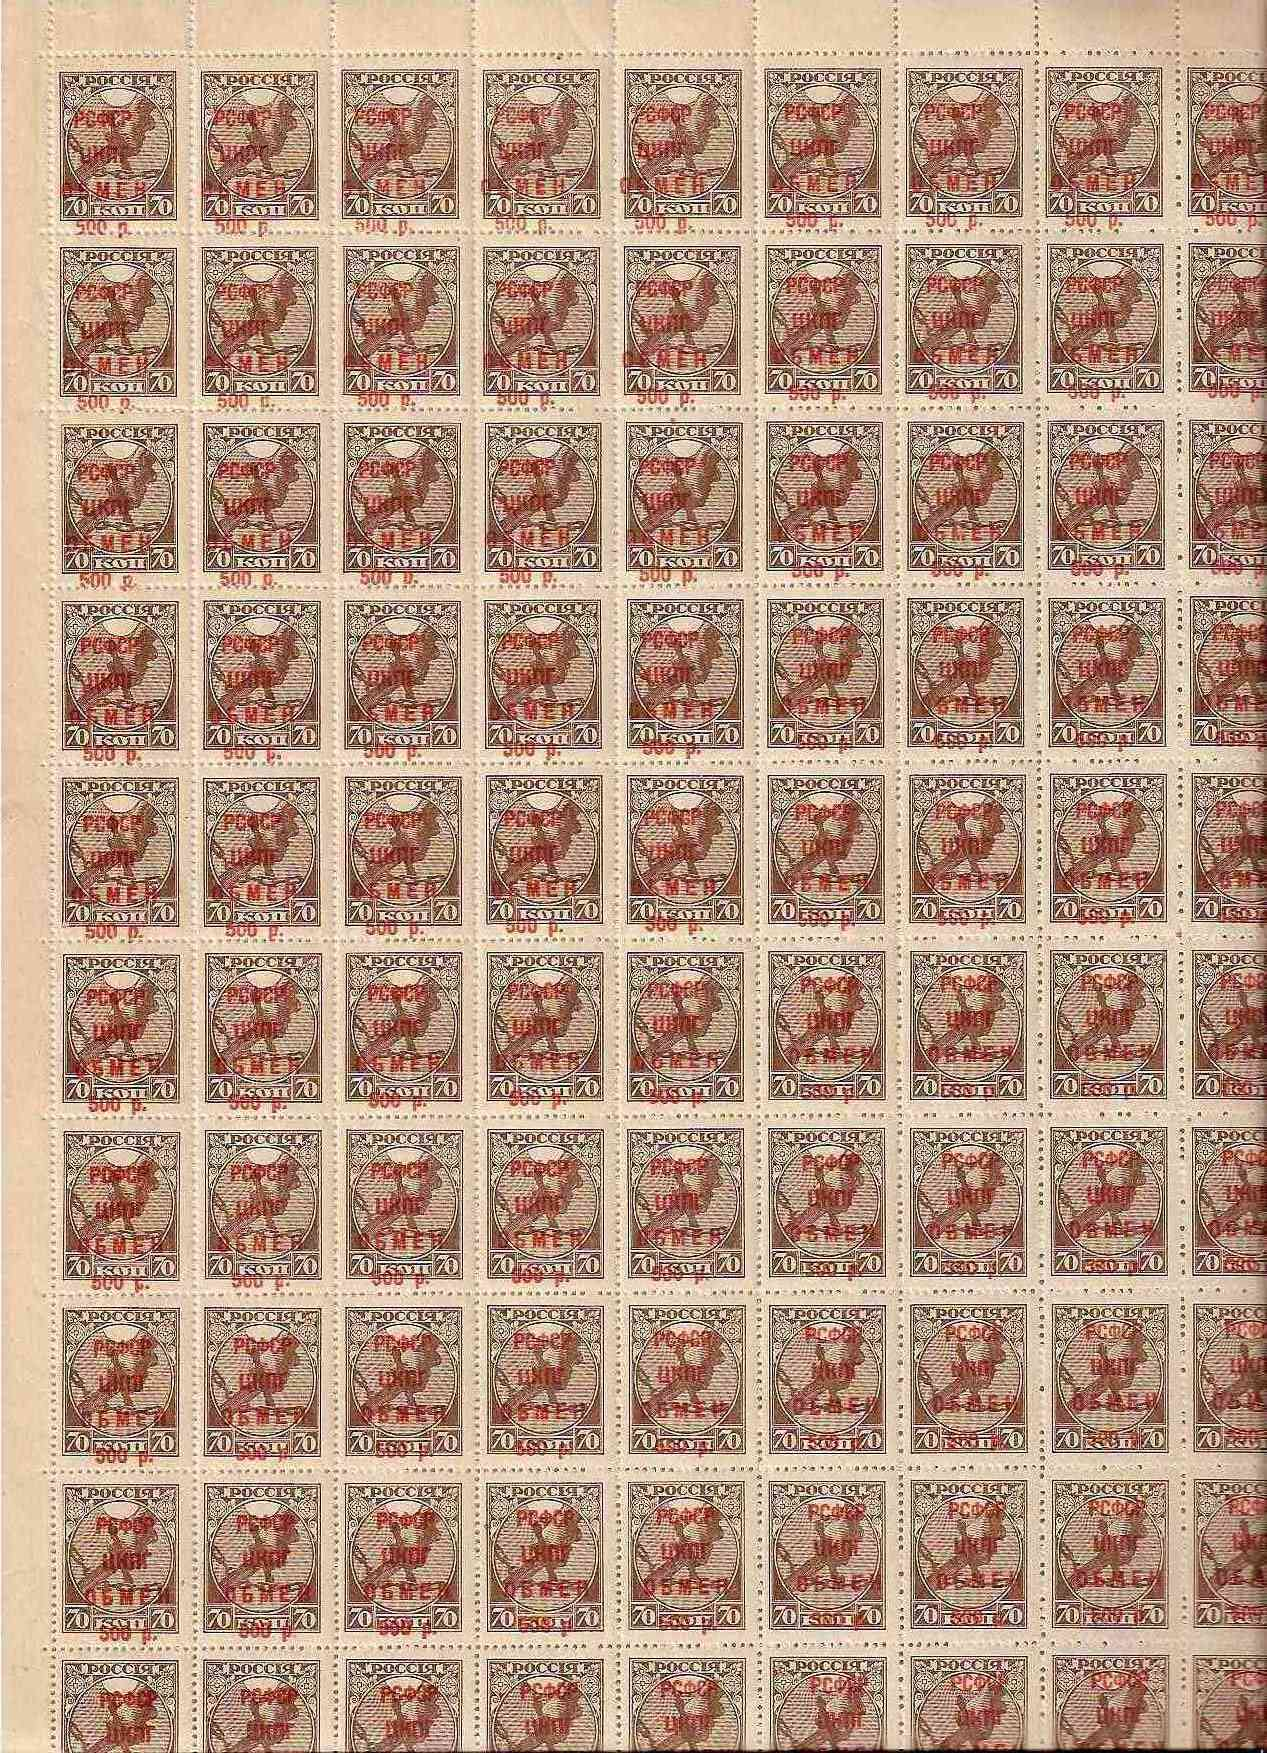 PRussia Specialized - hilatelic Exchage Tax Philatelic ExchangeTax Stamps. Michel 0 Michel 1-2 Michel 1-2 Michel 1-2 Michel 2